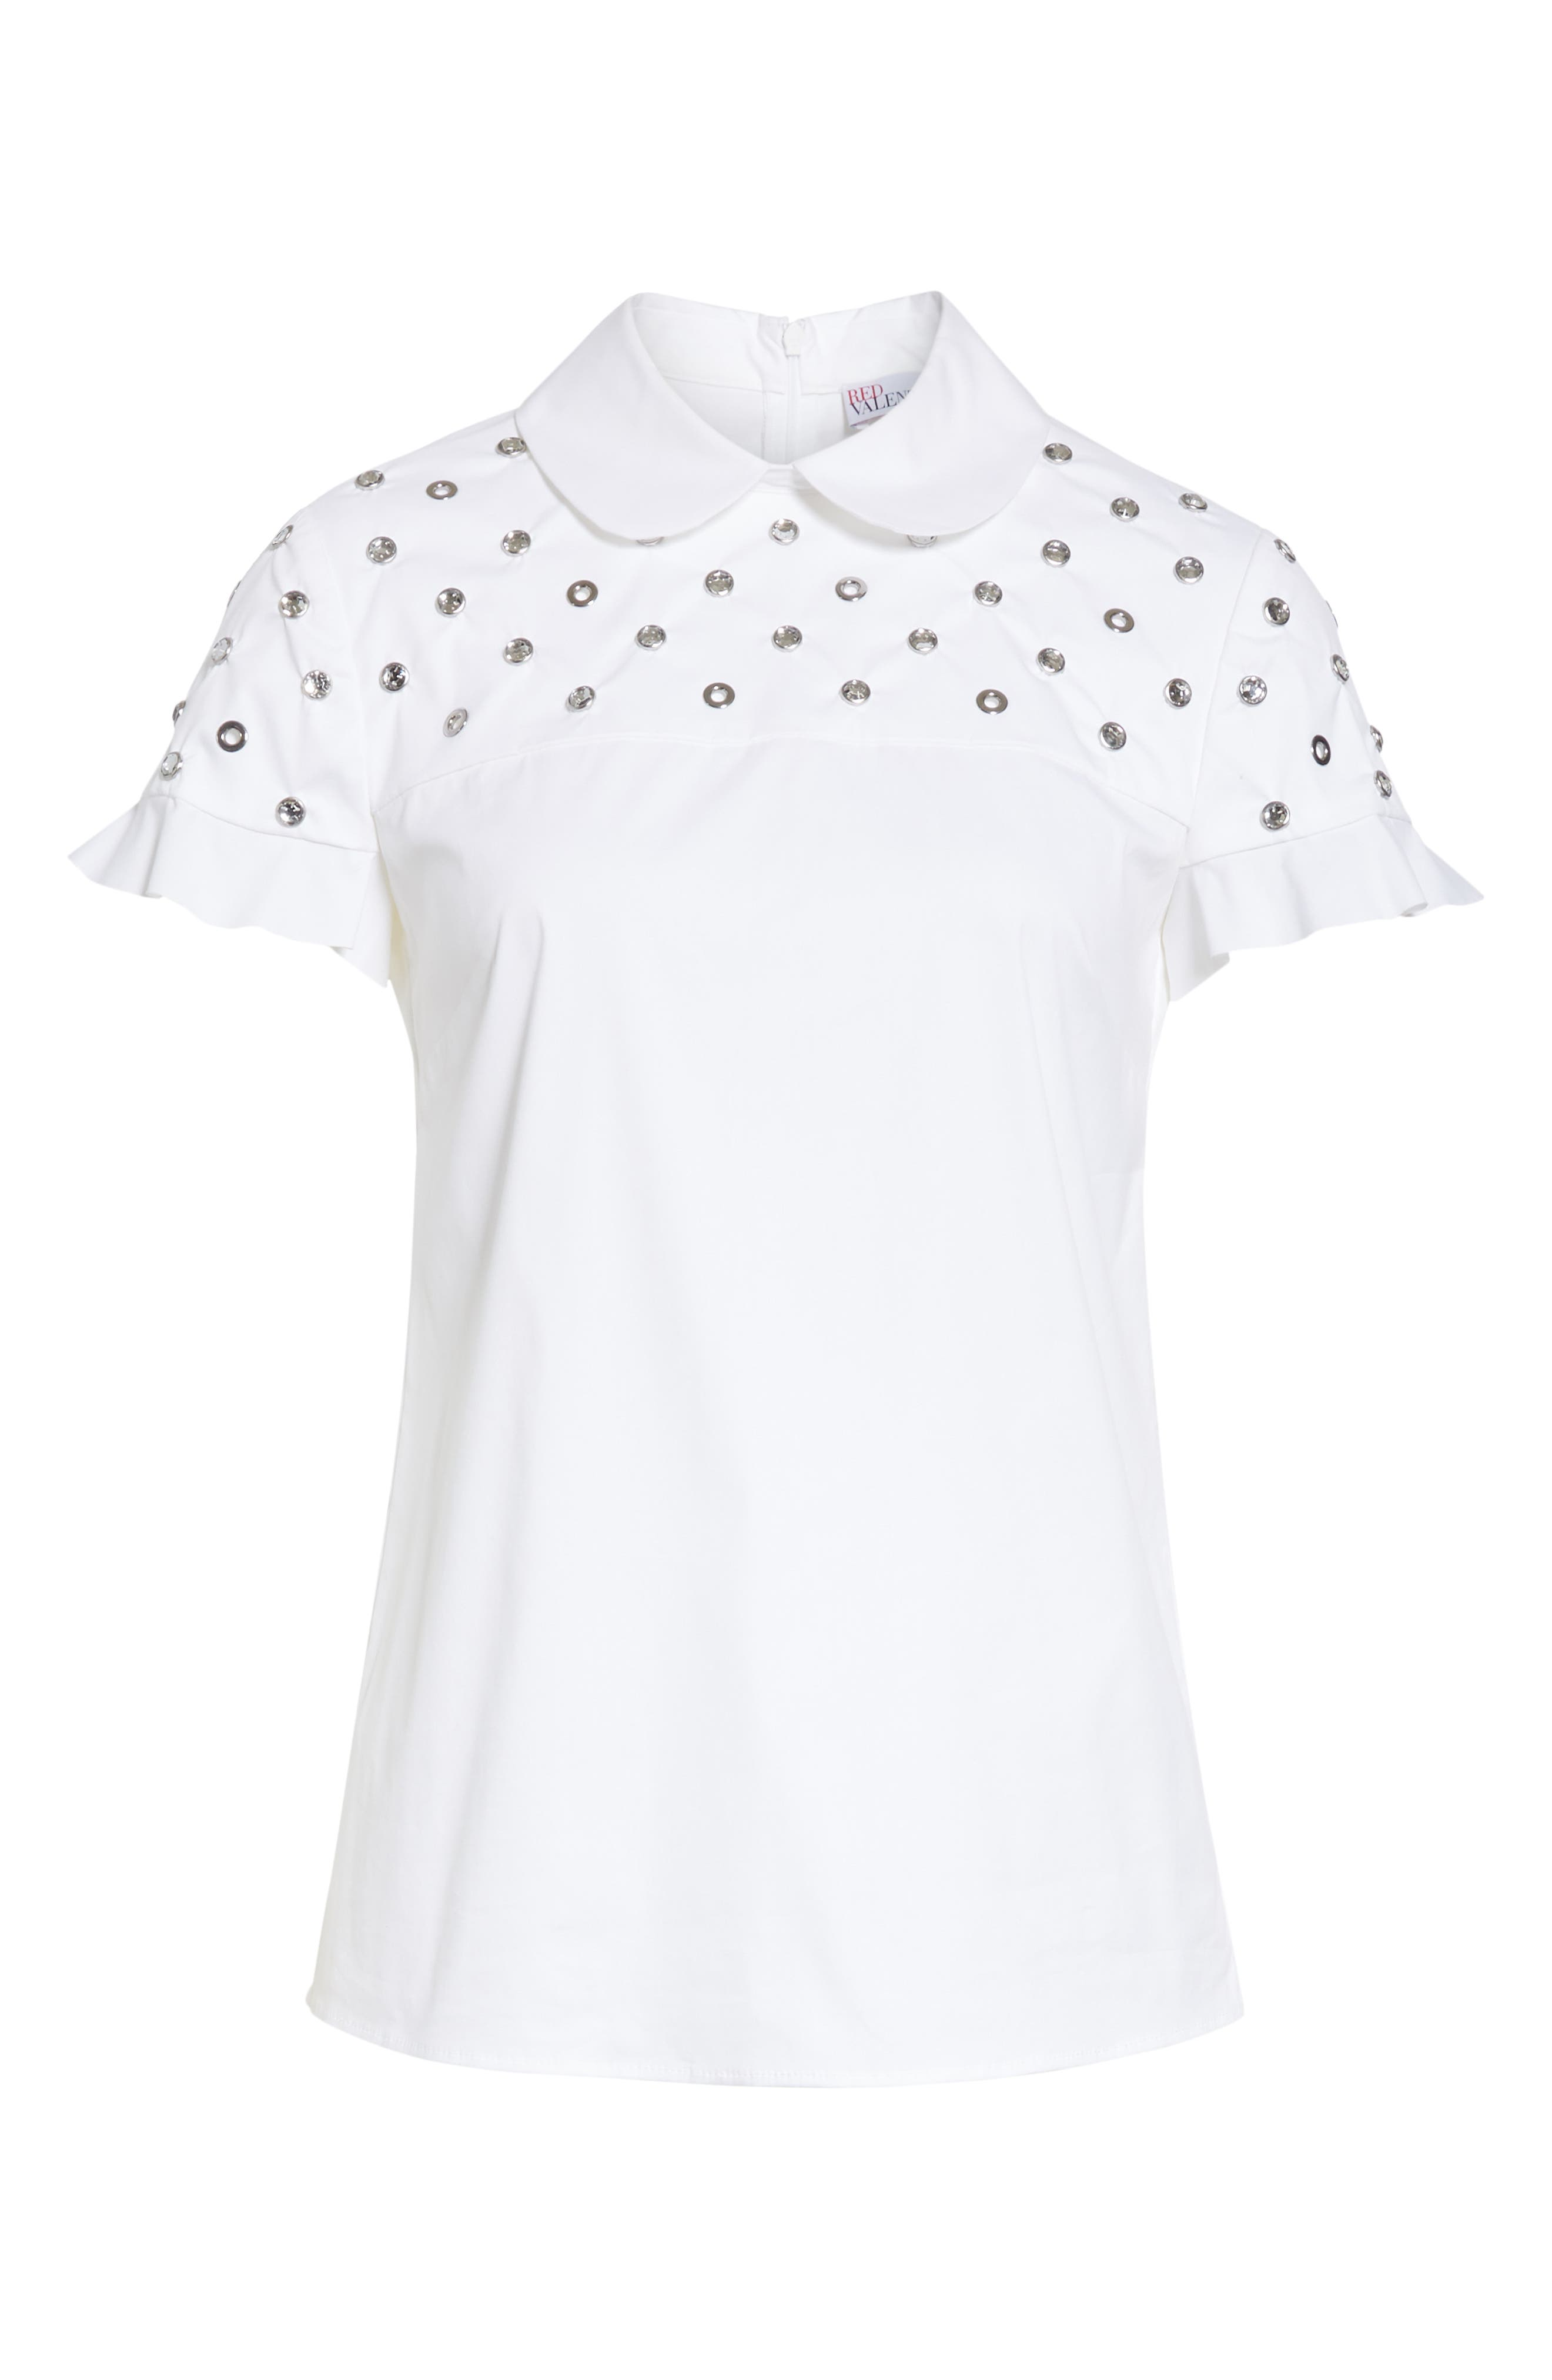 RED VALENTINO, Grommet & Crystal Ruffle Sleeve Top, Alternate thumbnail 6, color, BIANCO OTTICO